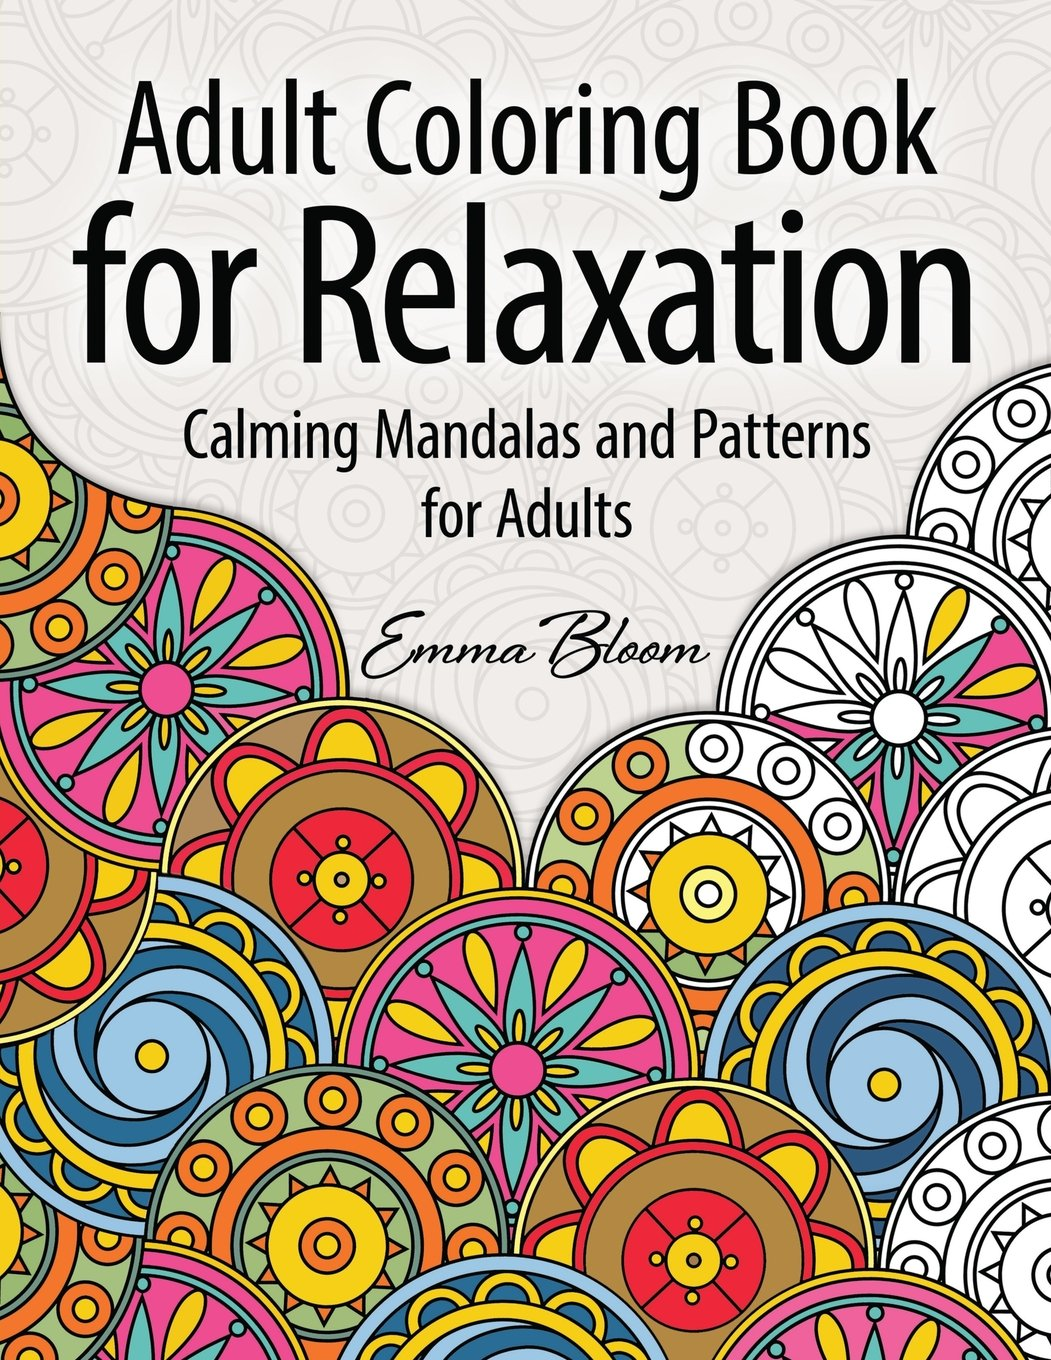 Publishers for adult coloring books - Adult Coloring Book For Relaxation Calming Mandalas And Patterns For Adults Adult Coloring Books Adult Coloring Books Emma Bloom 9781514186374